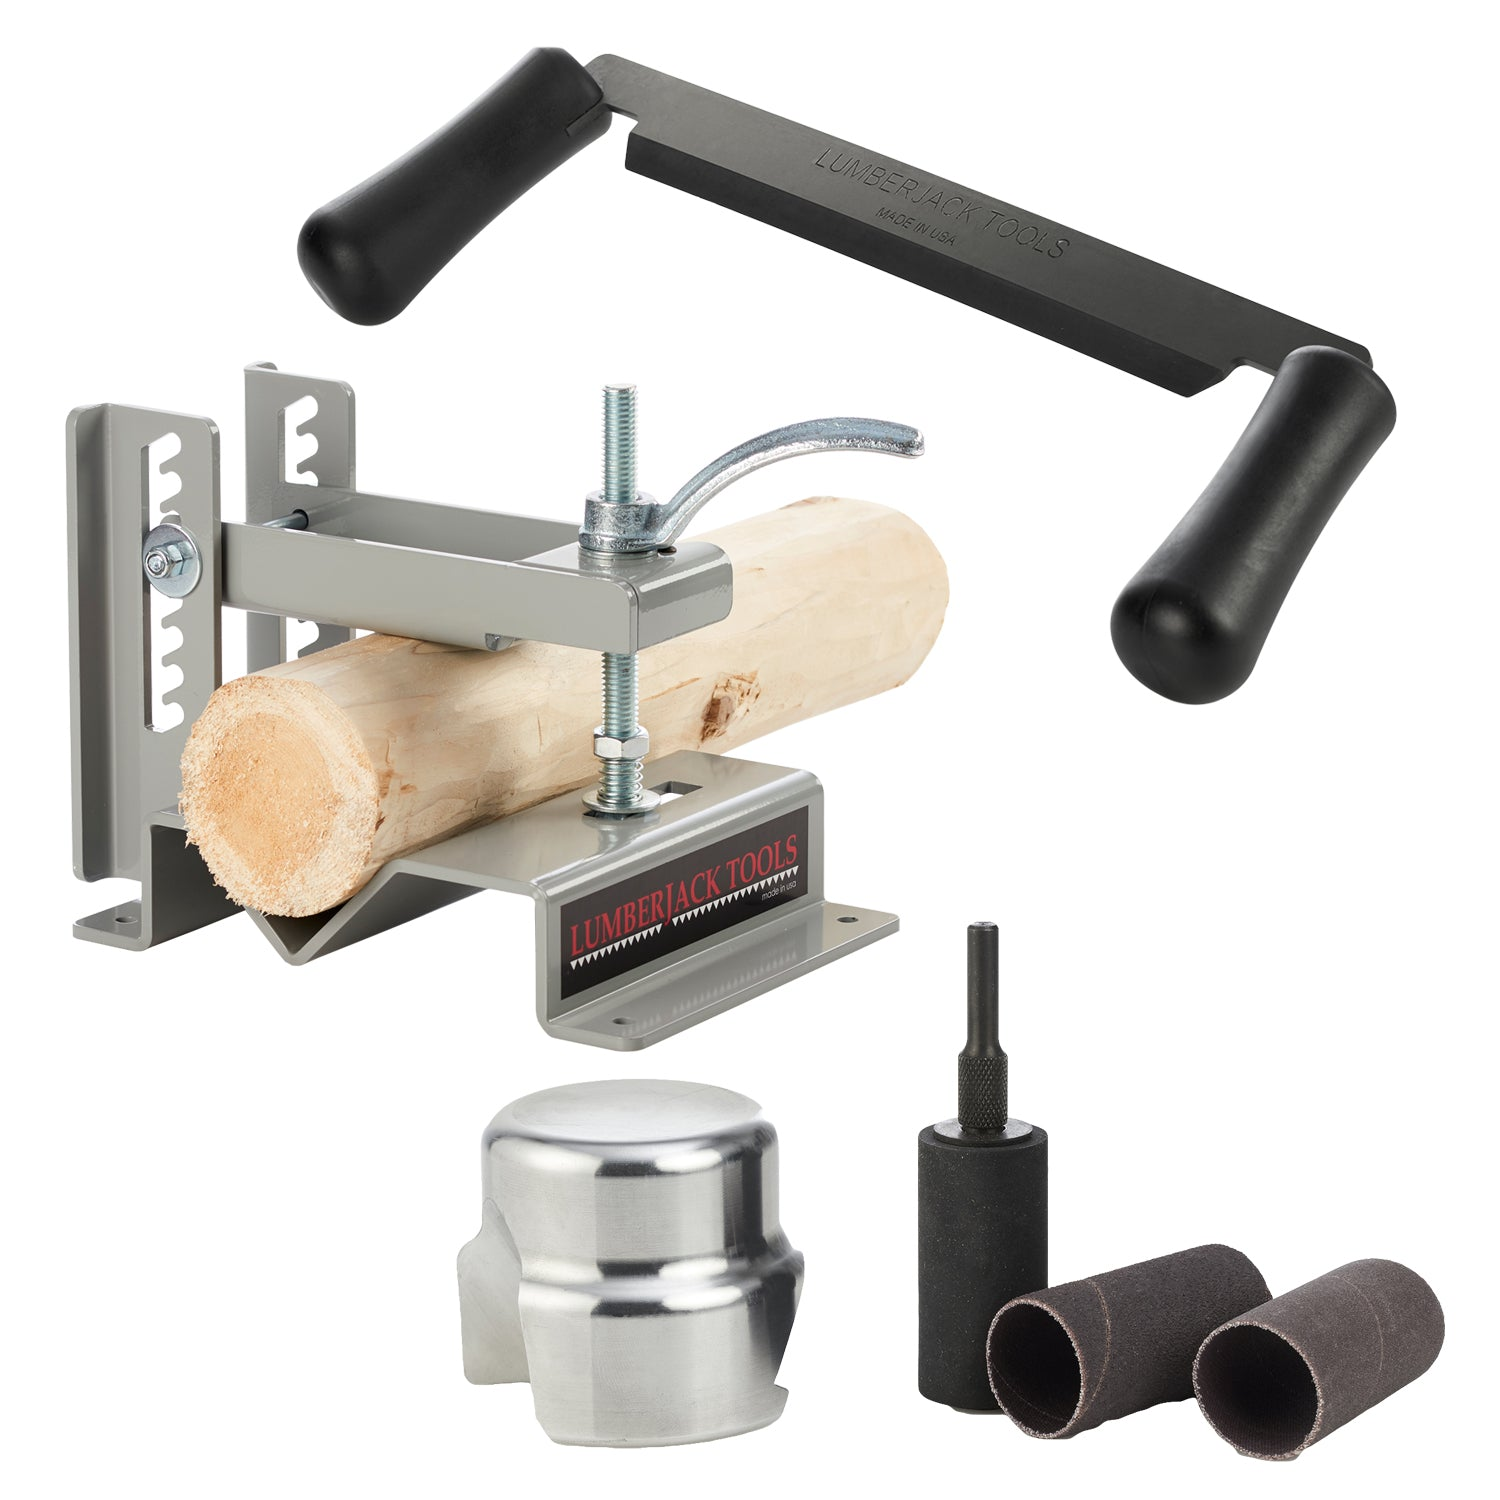 Log Furniture Beginner's Accessory Kit - Log Lock, Draw Knife and Blade Sharpening Jig